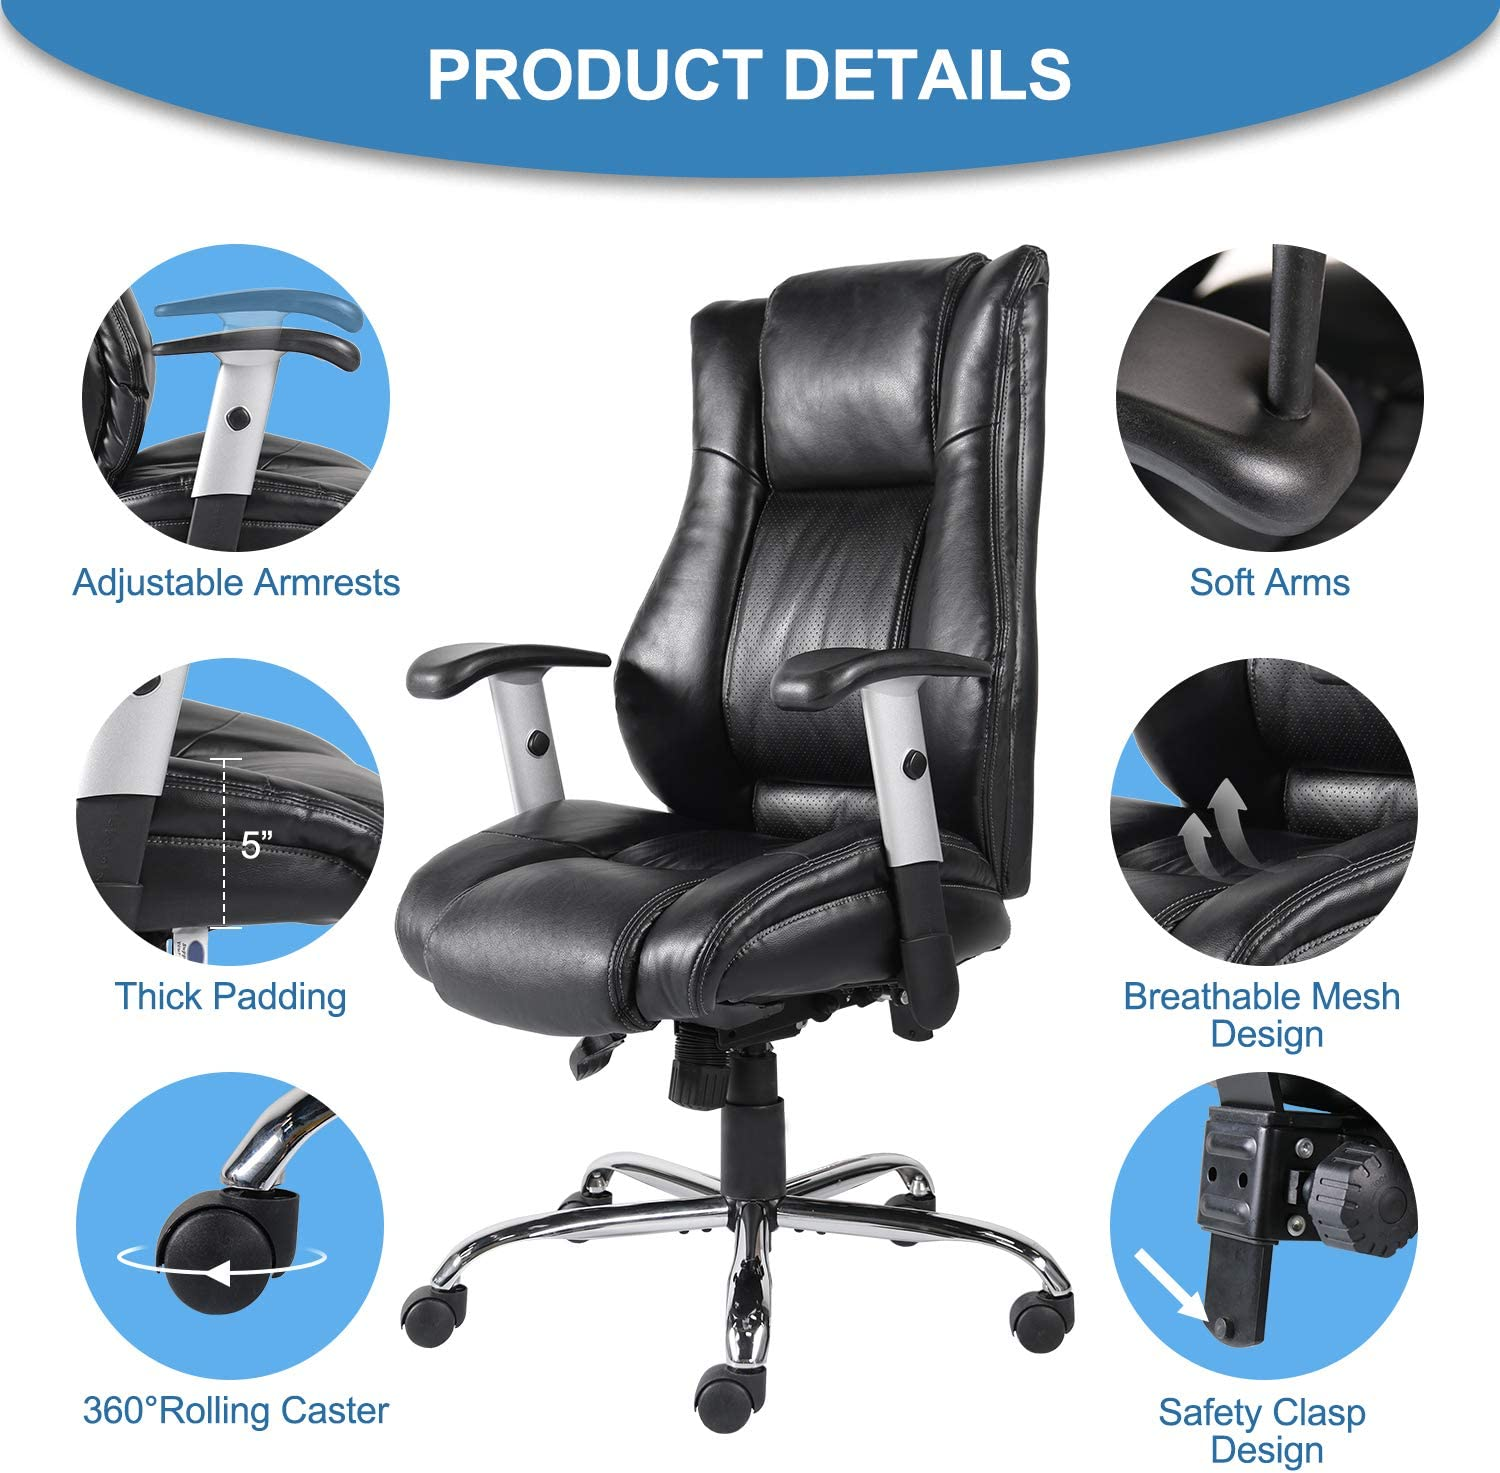 71PAuIW PZL. AC SL1500 - What is The Best Computer Chair For Long Hours Sitting? [Comfortable and Ergonomic] - ChairPicks